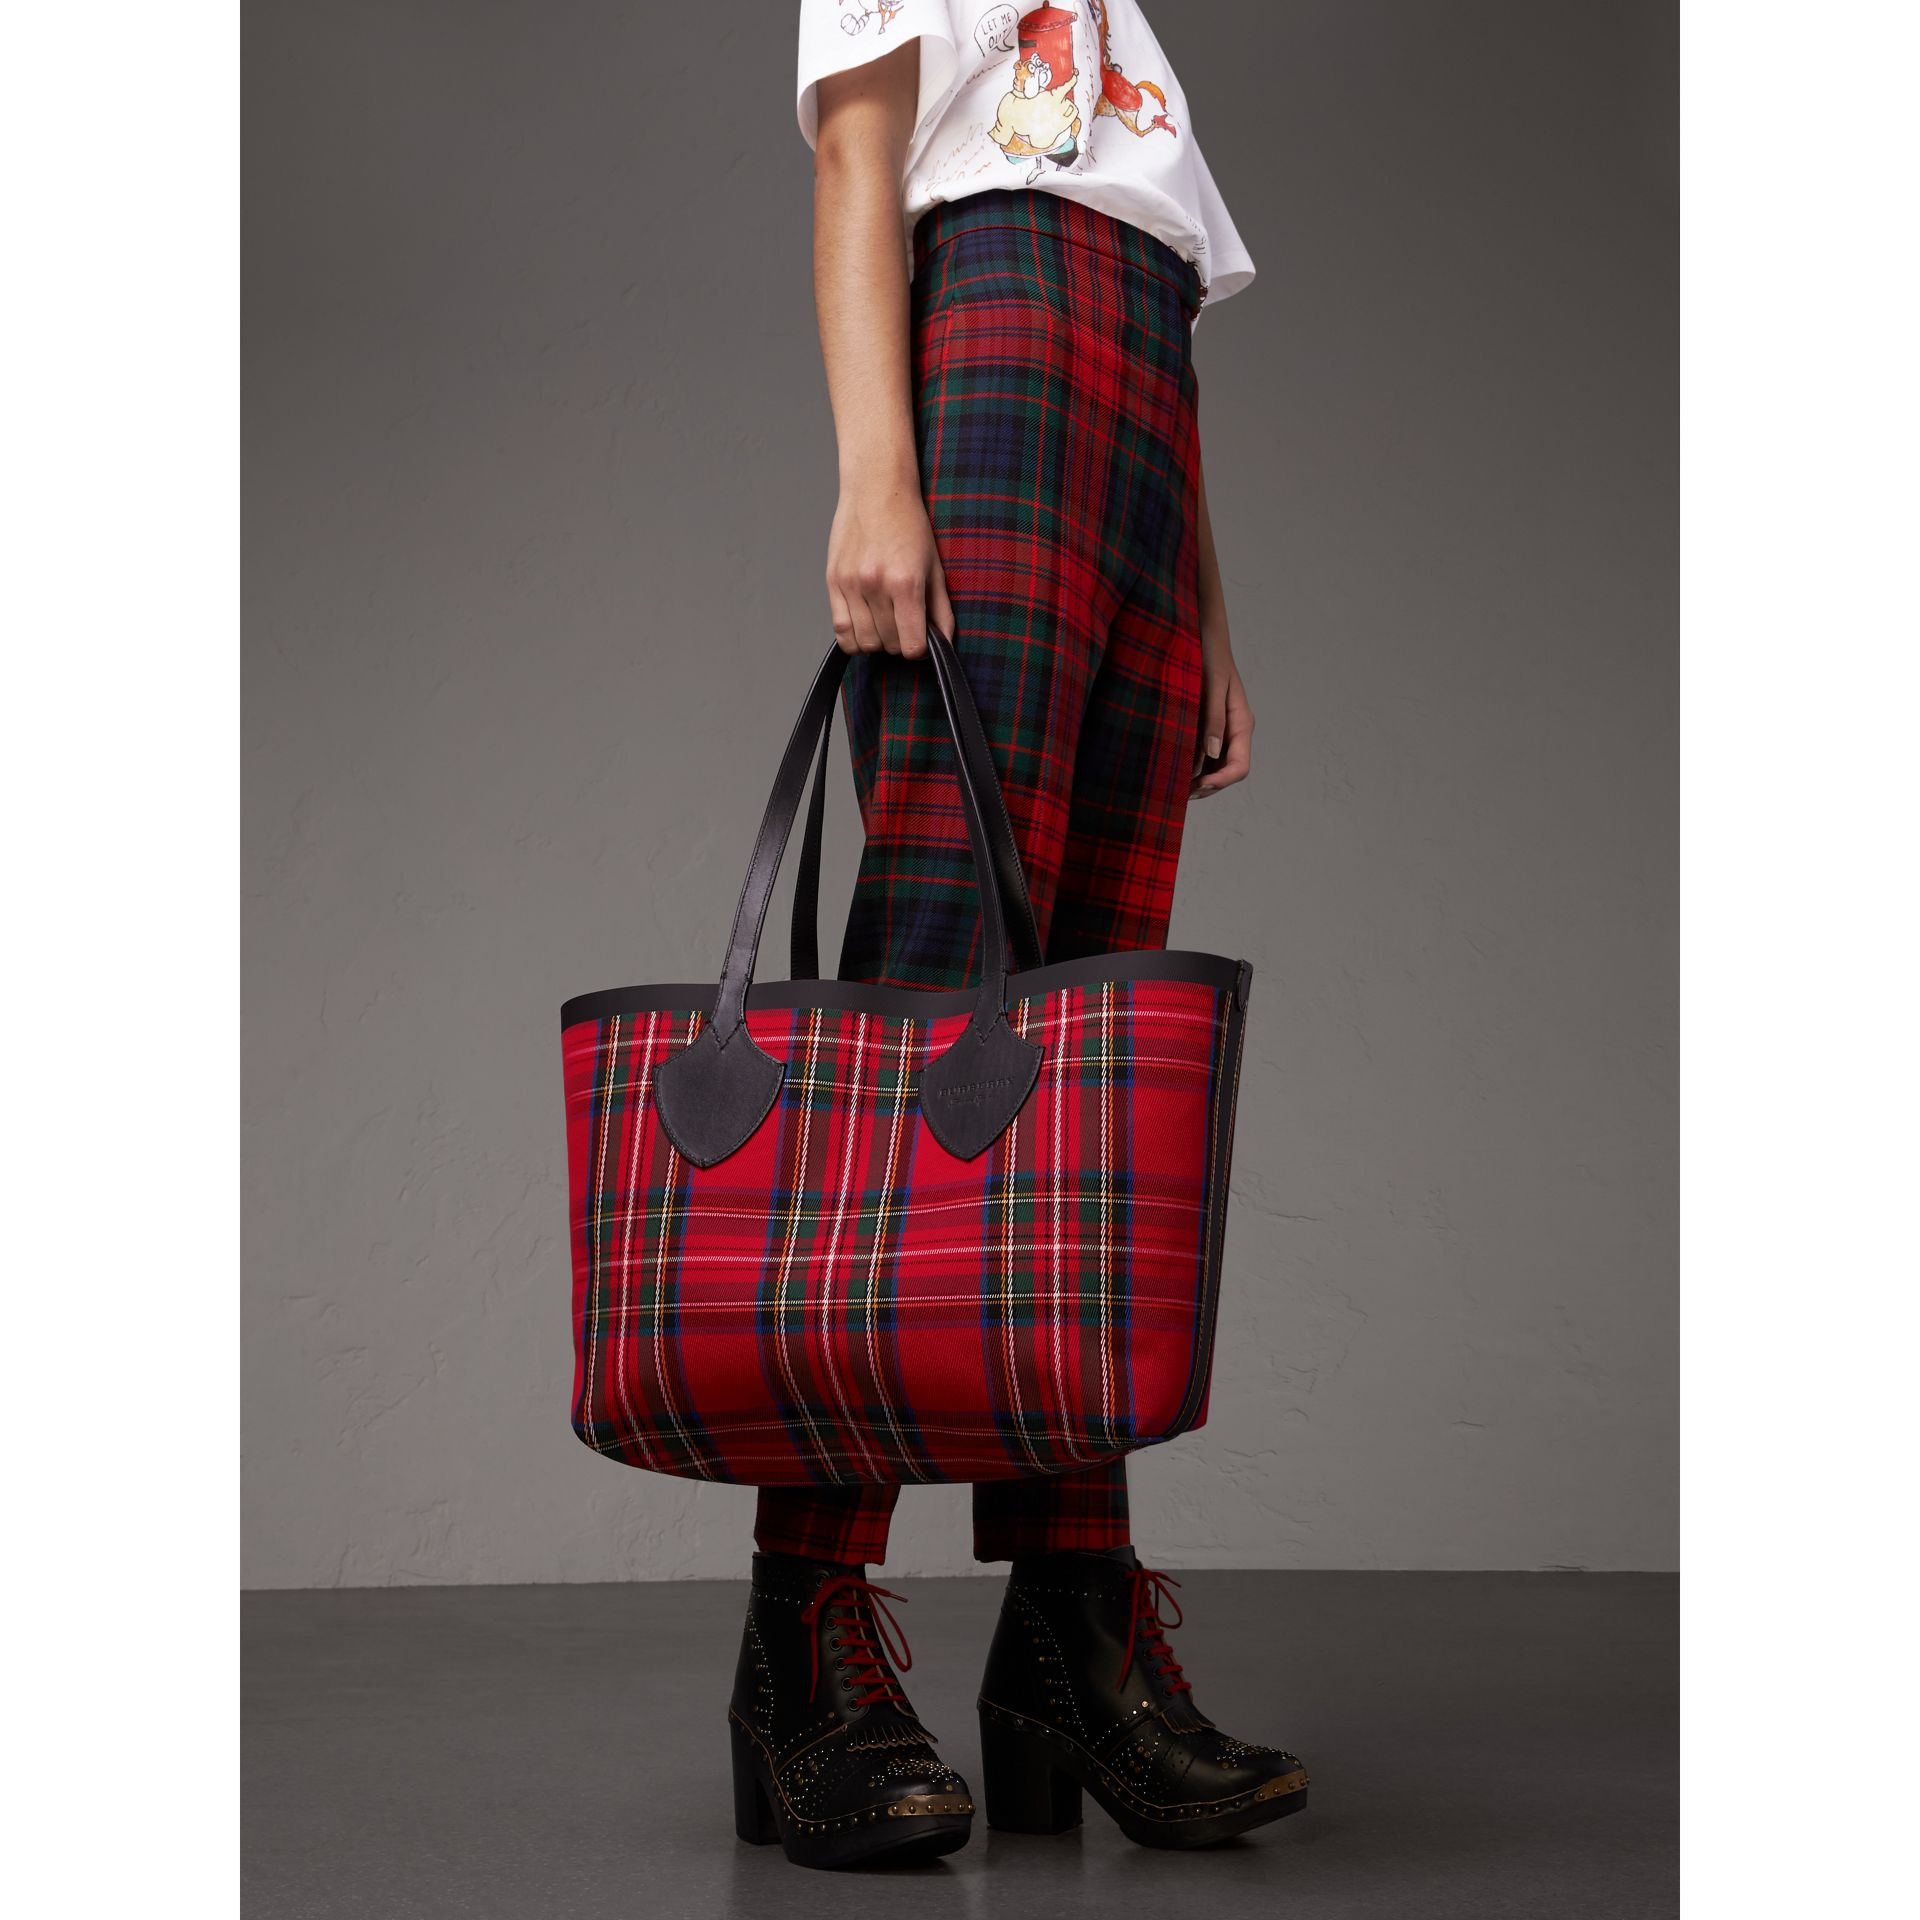 Sac tote The Giant moyen en Vintage check (Jaune Antique/rouge Vif) | Burberry Canada - photo de la galerie 6